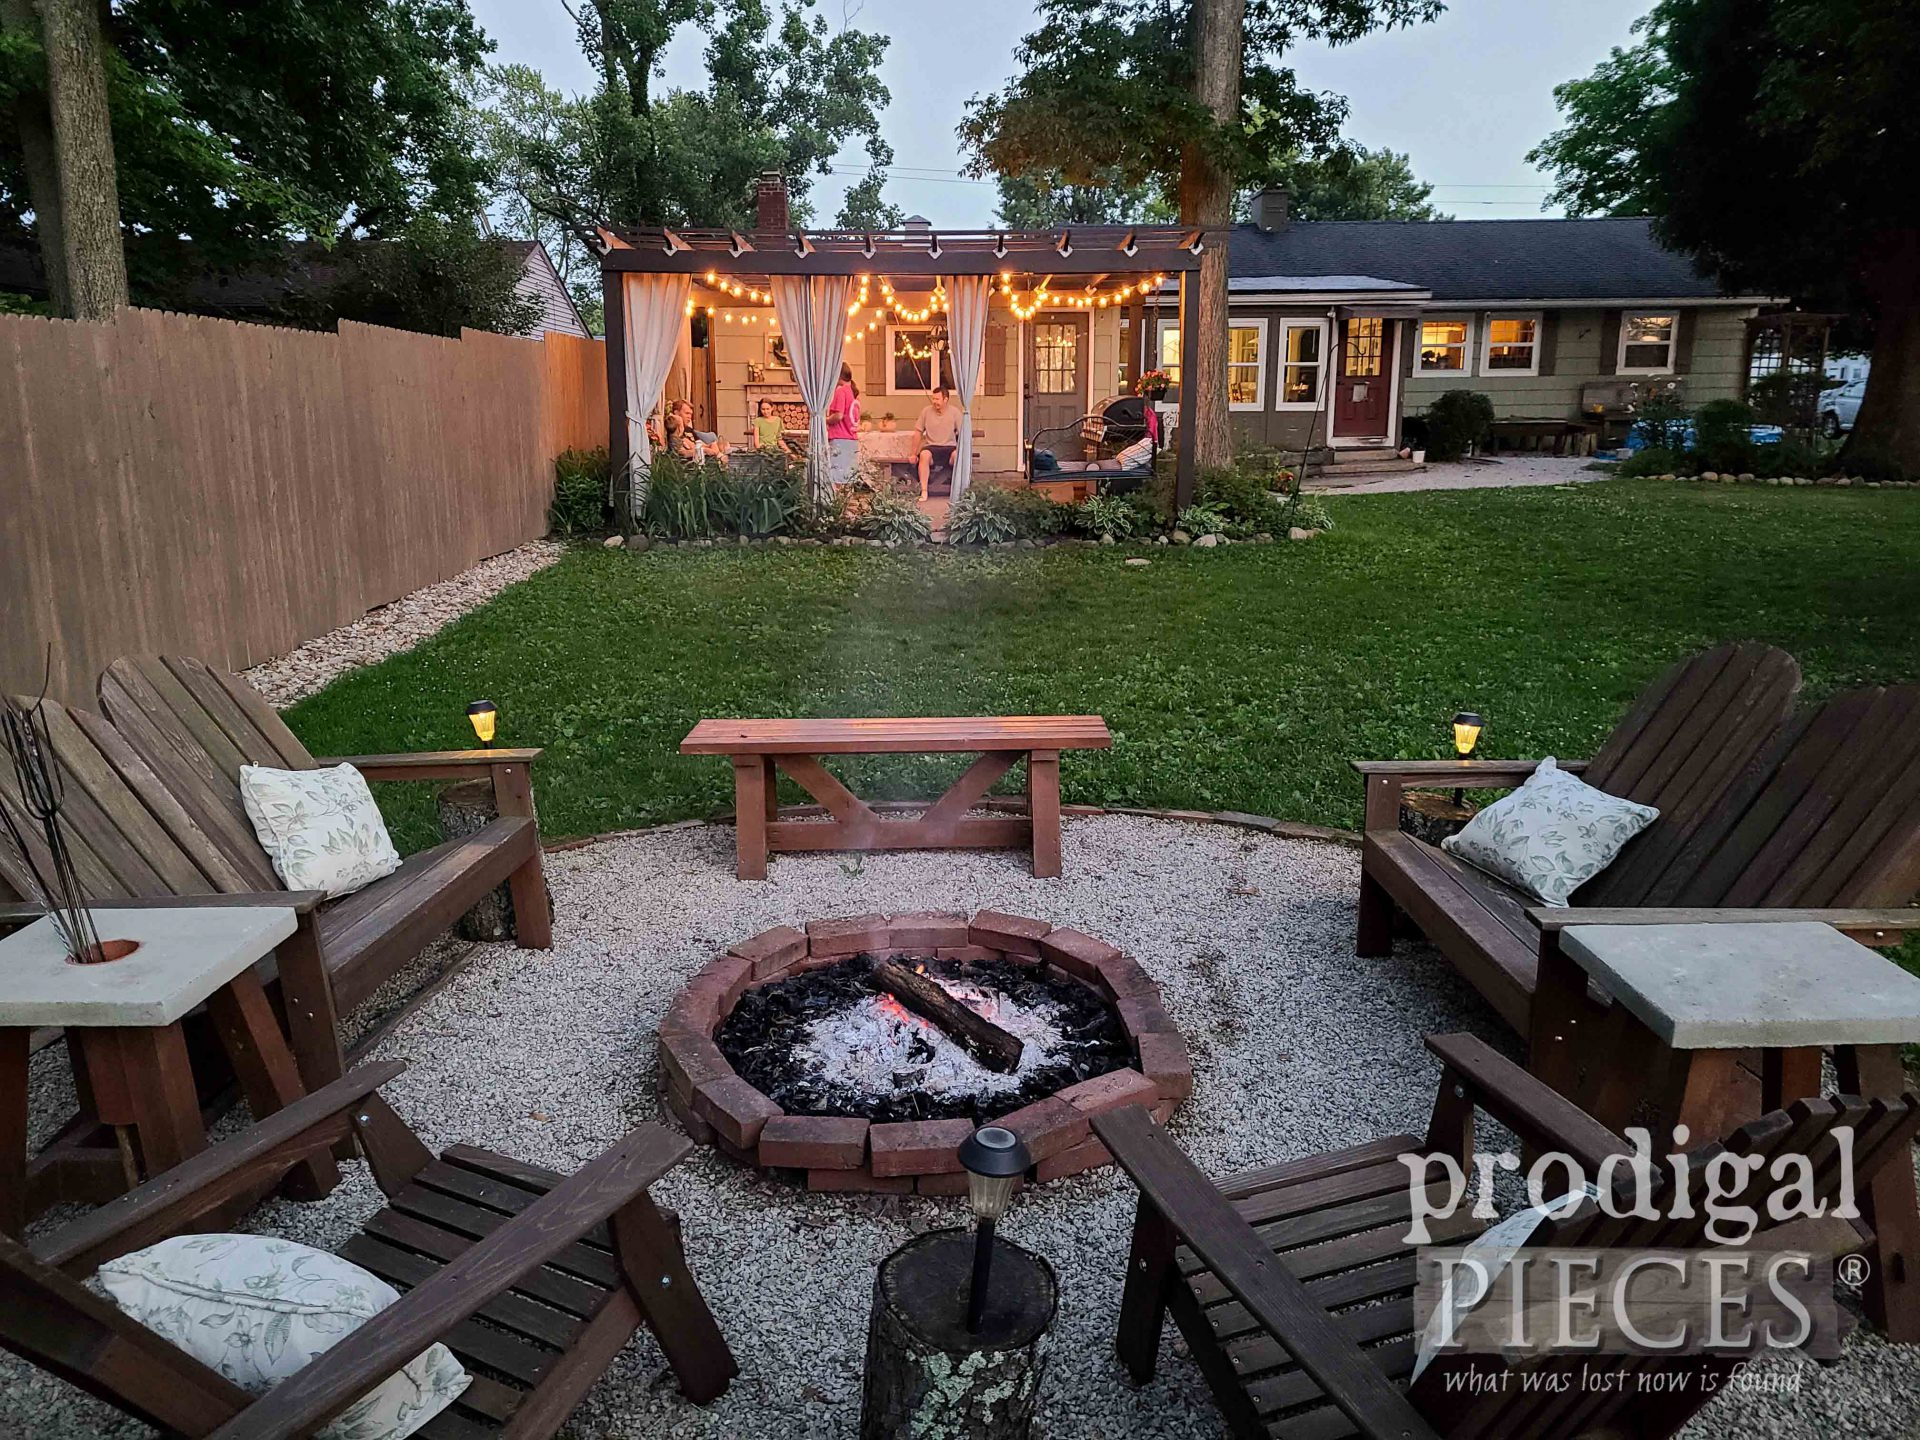 Fire Pit with DIY Patio & Pergola by Prodigal Pieces | prodigalpieces.com #prodigalpieces #diy #home #homedecor #patio #backyard